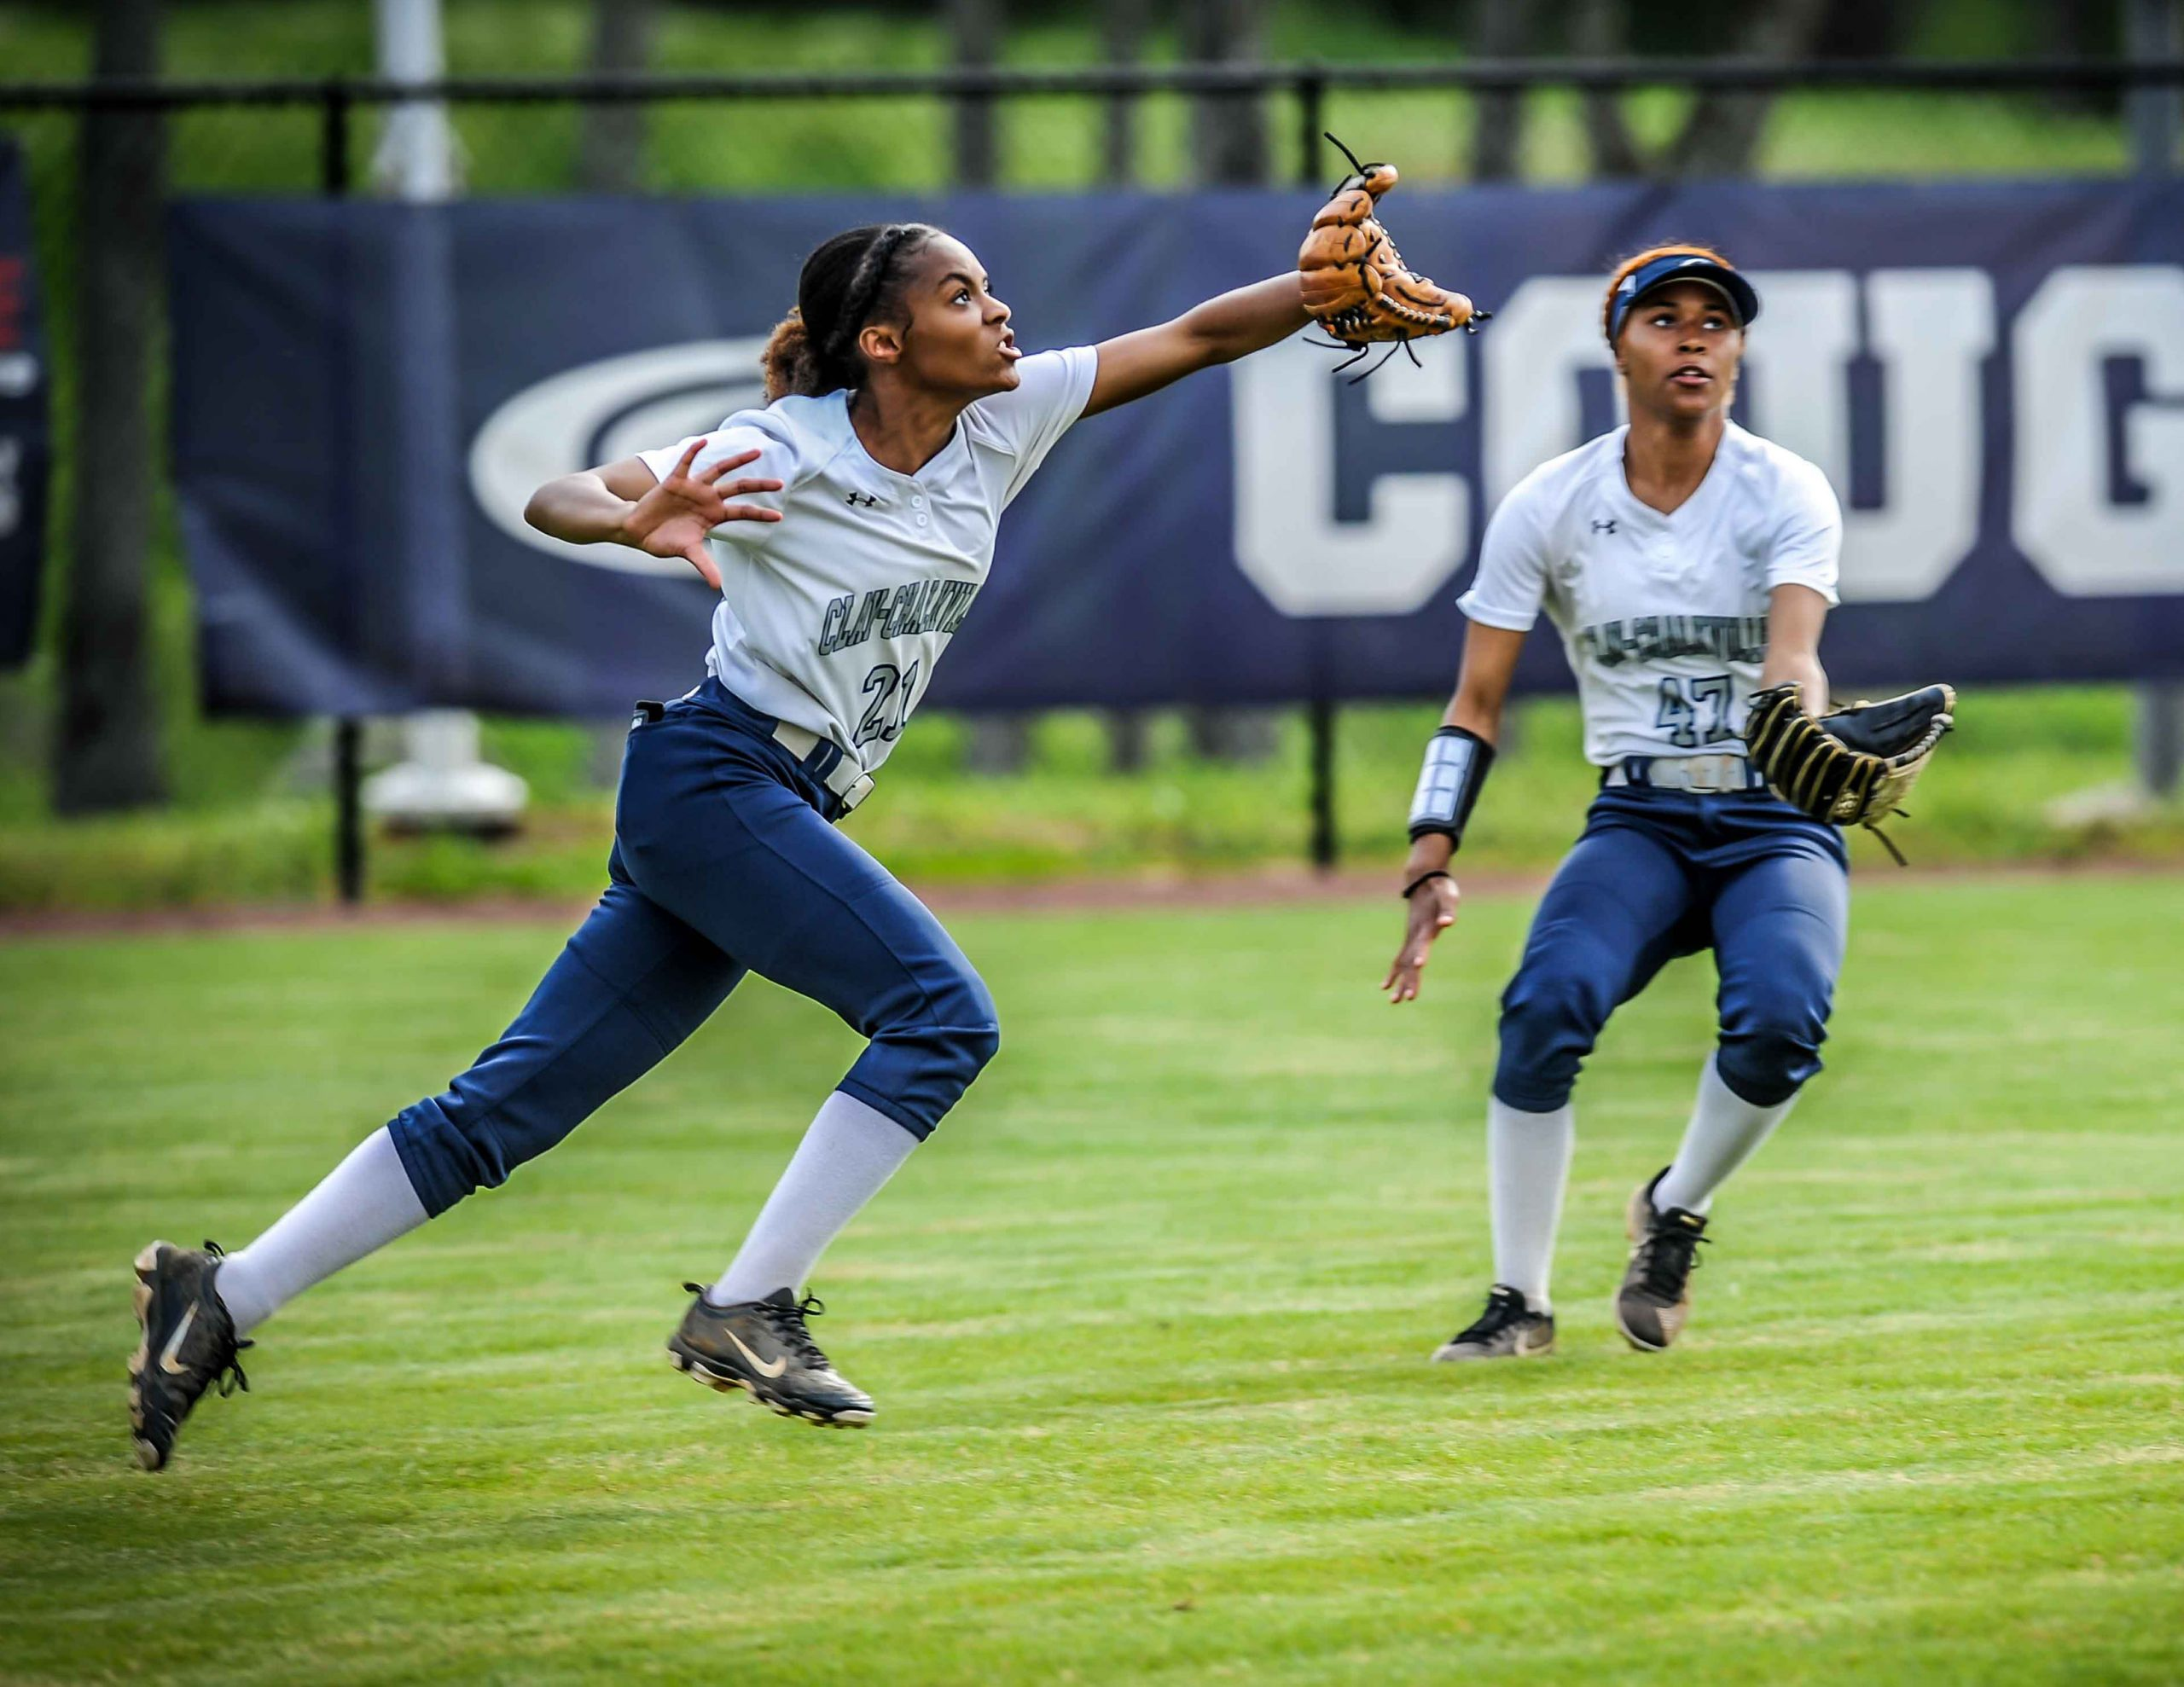 SOFTBALL ROUNDUP: Clay-Chalkville tops Pinson in area play; No. 7 Springville wins 5th straight